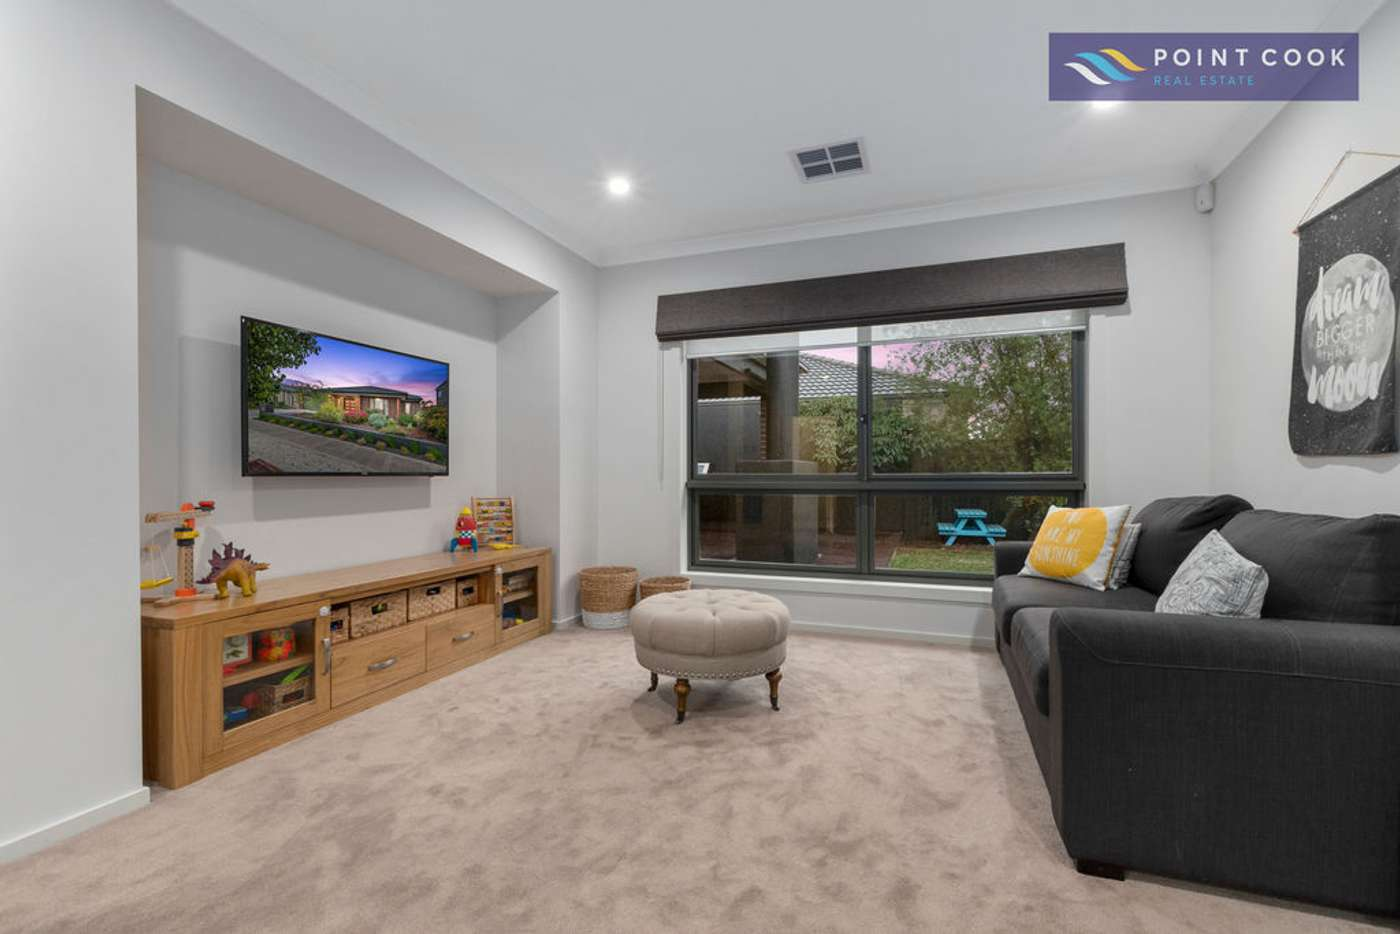 Sixth view of Homely house listing, 17 Japonica Way, Point Cook VIC 3030